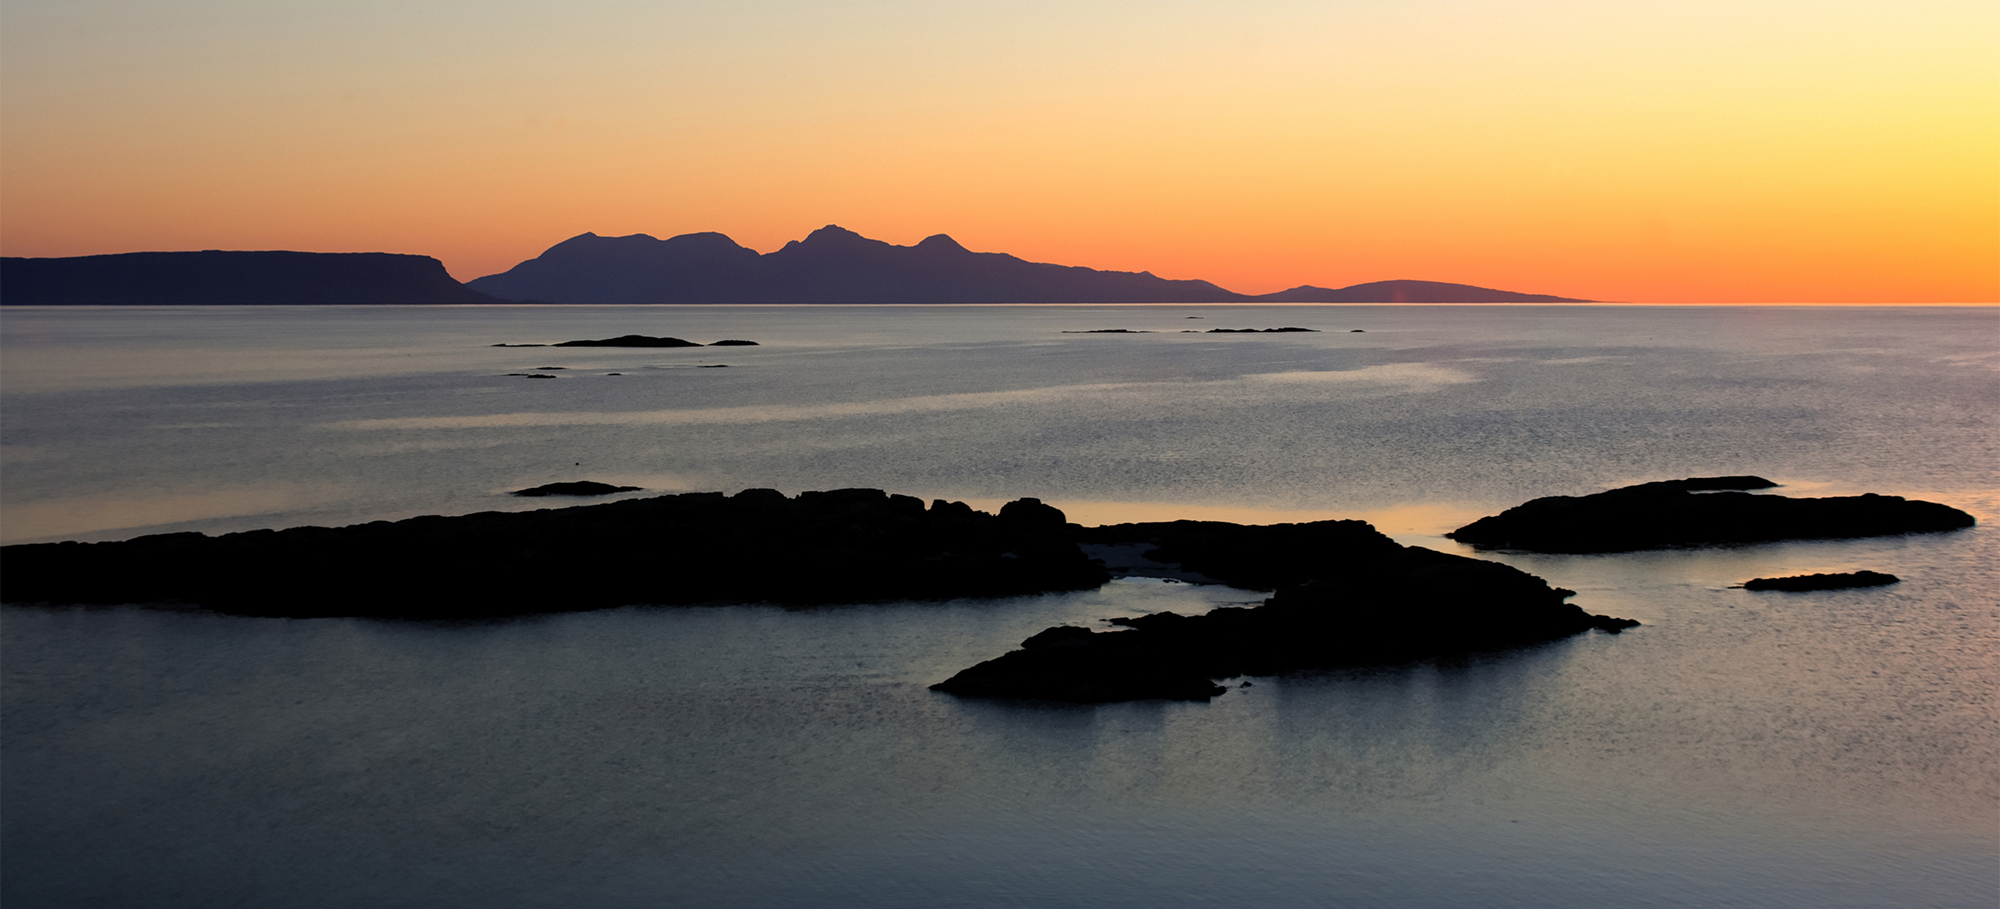 Sunset over the Scottish Islands of Rum and Eigg